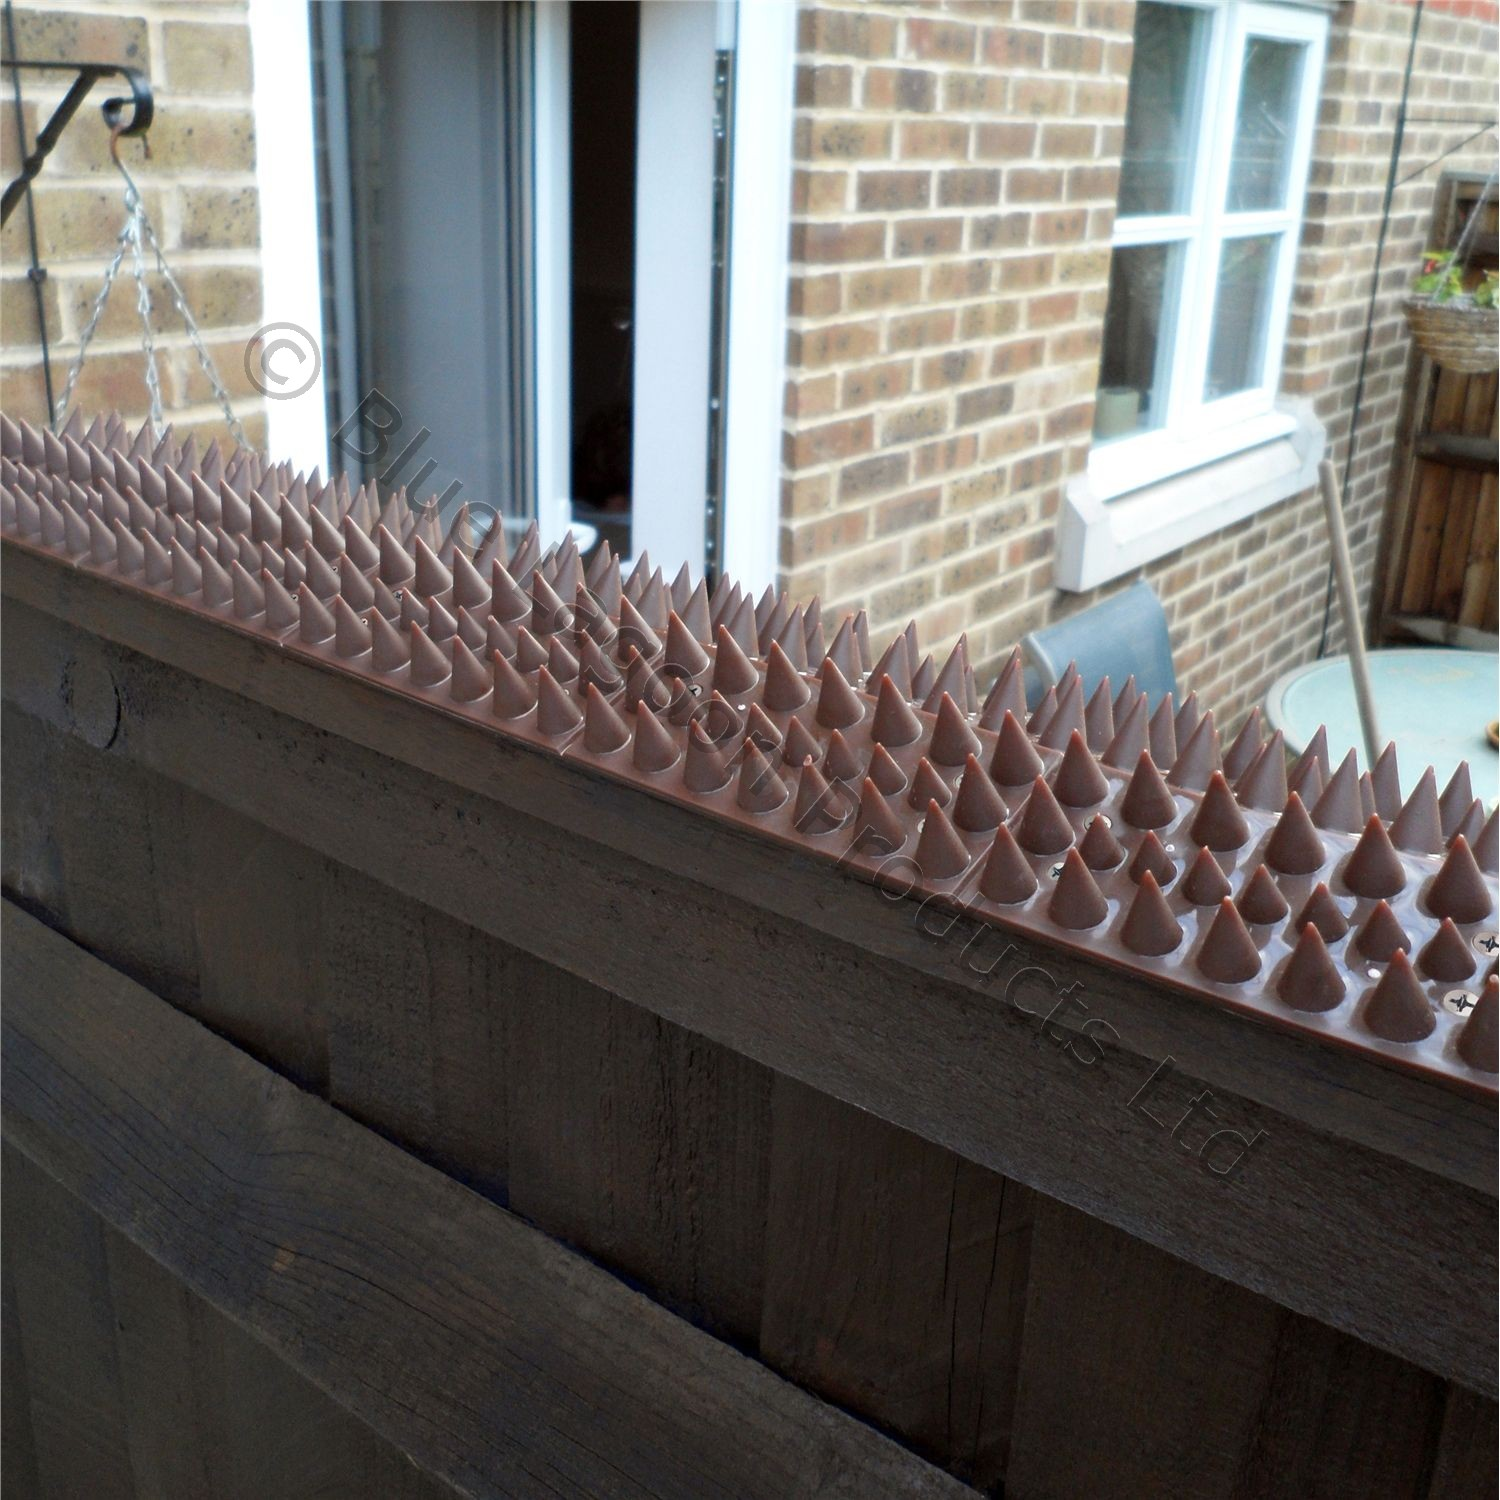 5 Metre Brown Wall Fence Spikes Anti Climb Security Cat